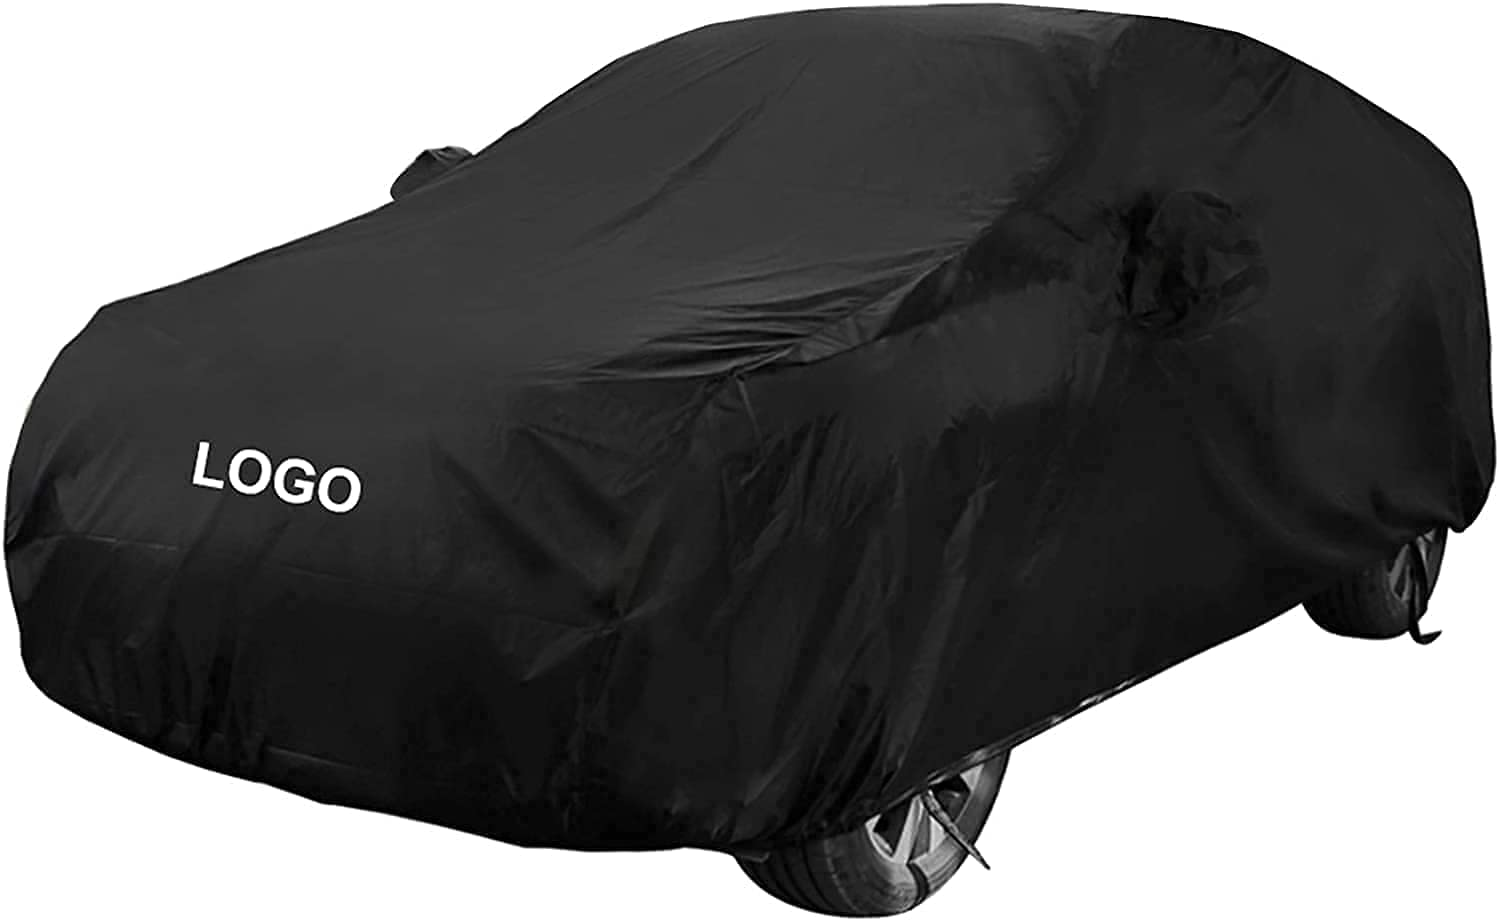 QKWBD Car Covers for Selling Lexus RX400 SUV Ext Tucson Mall All Waterproof Weather